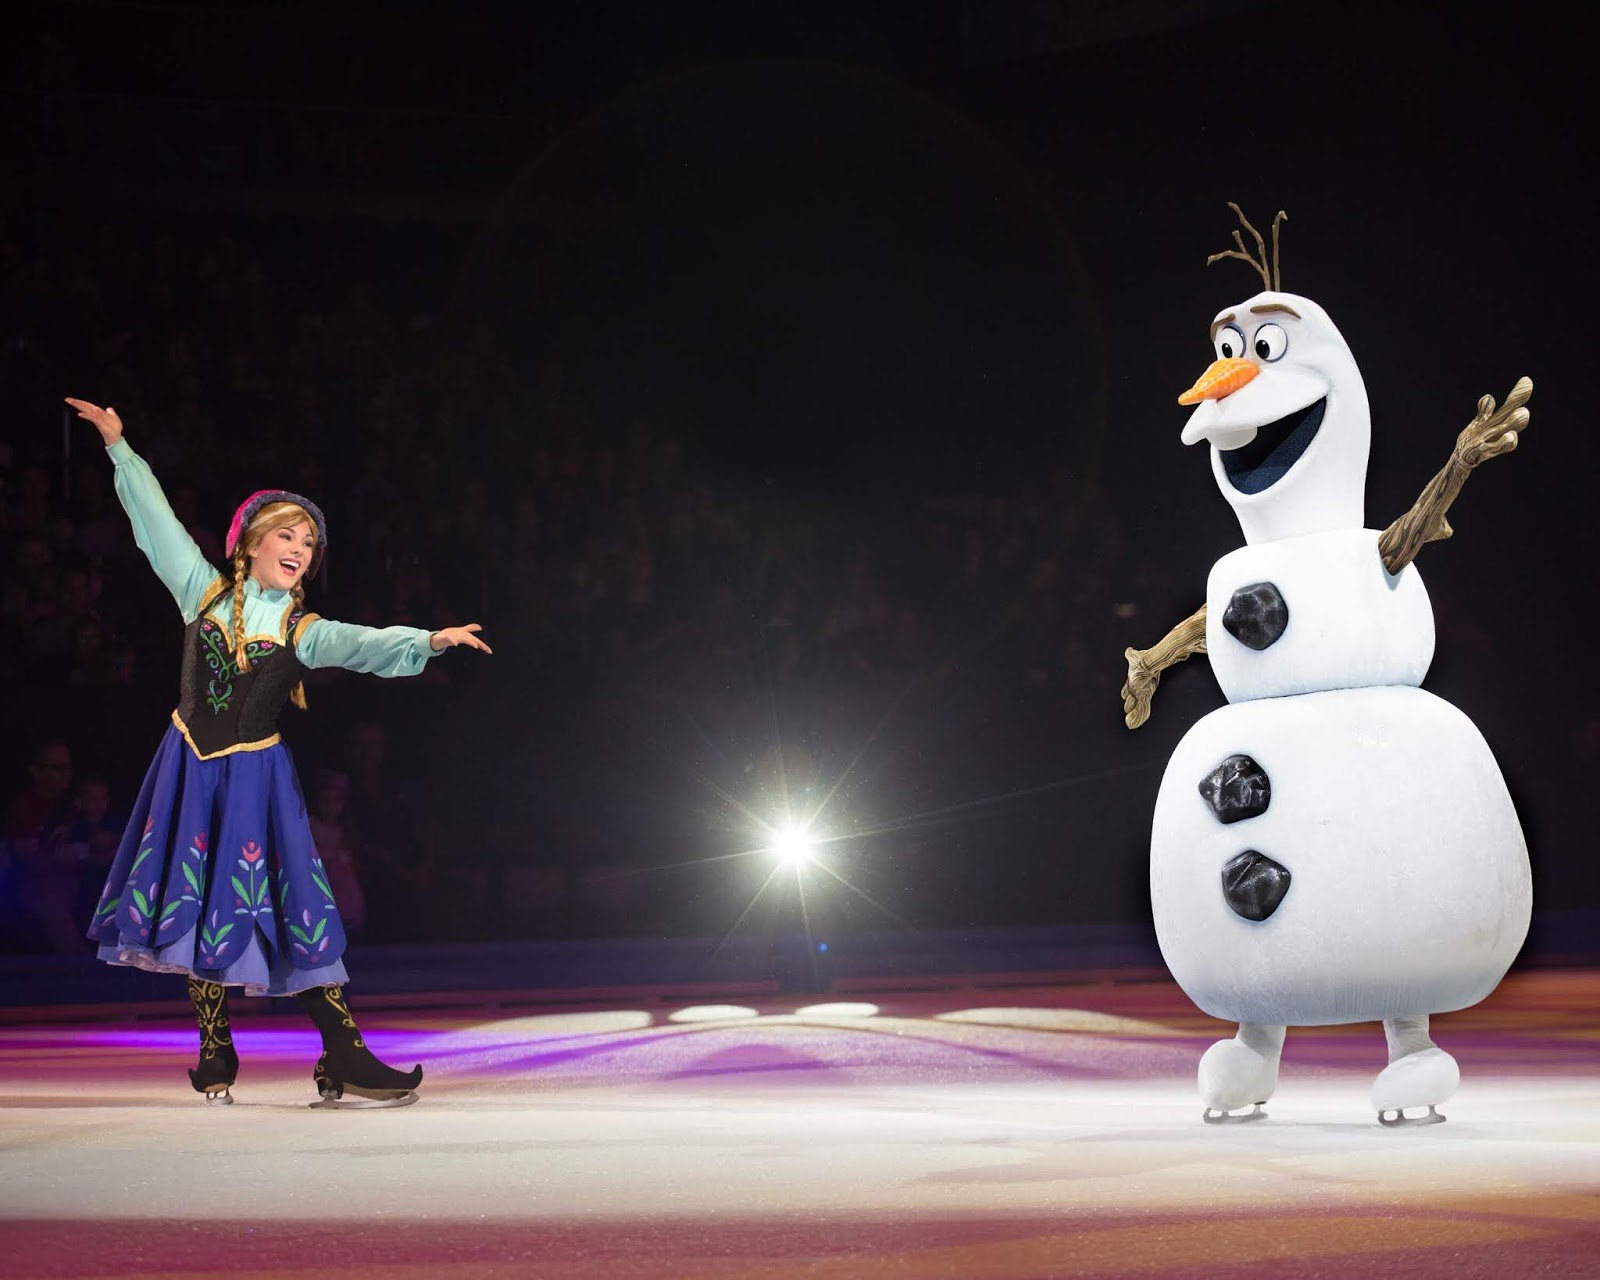 Disney On Ice Newcastle 2019 - How To Buy Pre-Sale Tickets  - Frozen